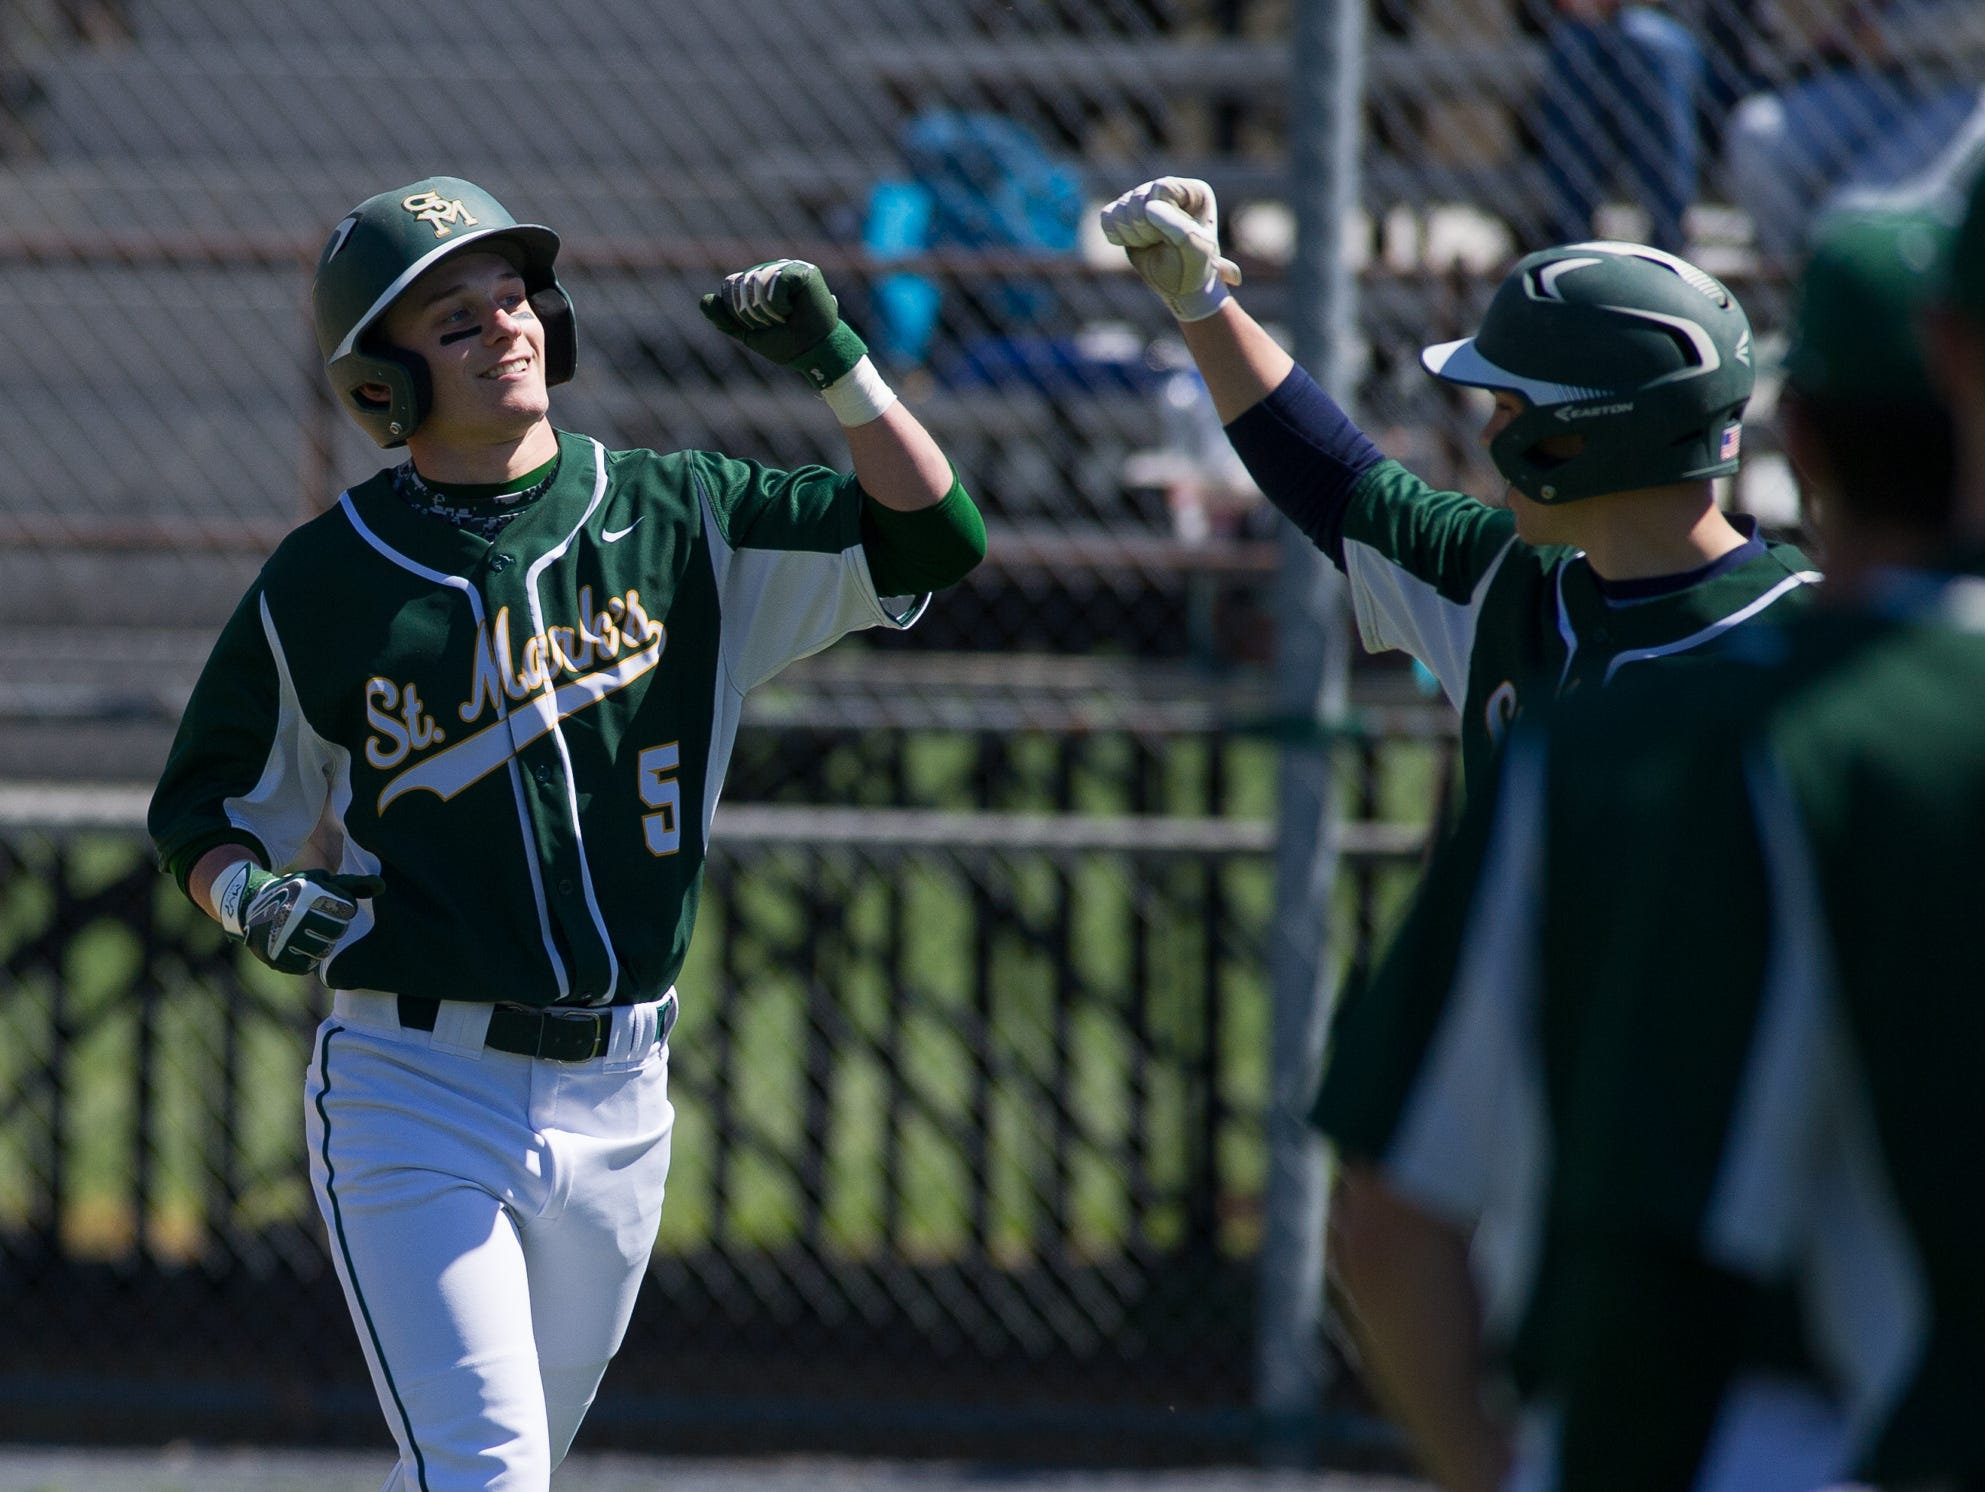 St. Mark's Tyler Kaczmarczyk (5) celebrates with his team after hitting a home run in the first inning against Caesar Rodney.